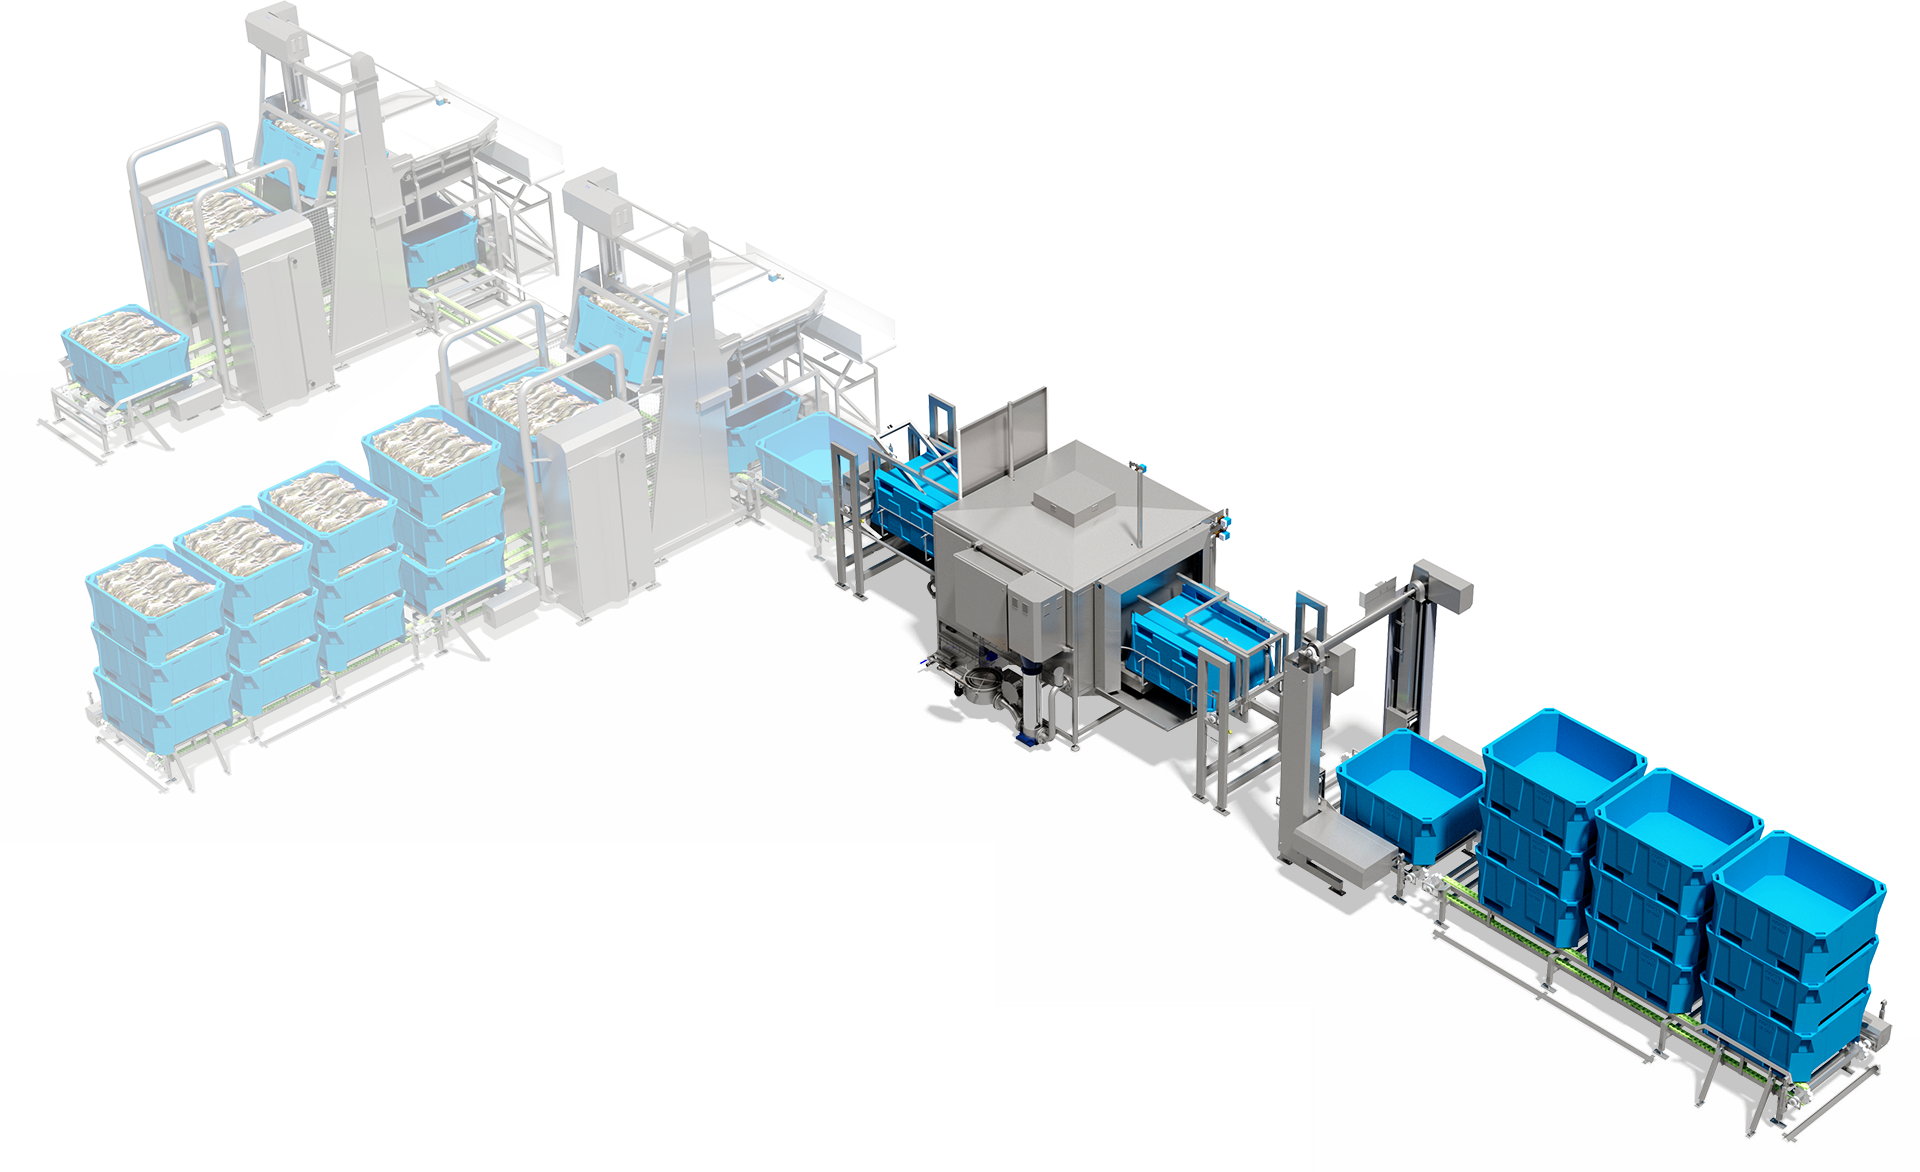 Flexible cost-effective, energy efficient modules with water recycling, reduced operational costs. Highly automated space-saving, with 5 times lower consumption.